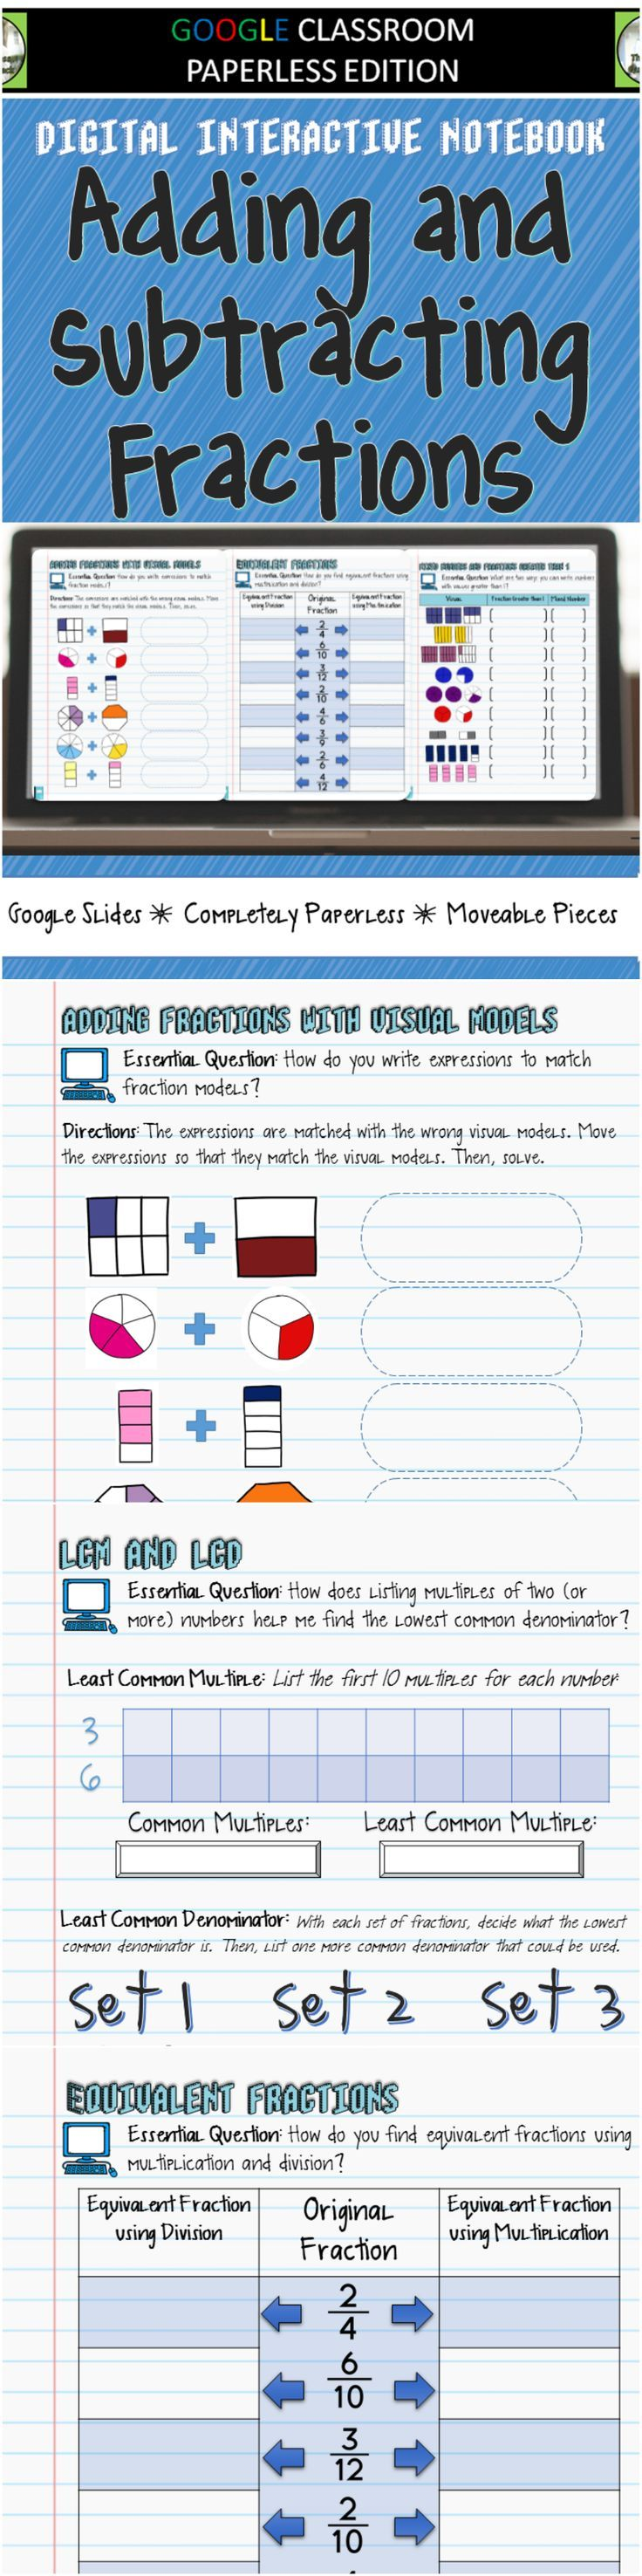 Google Classroom Adding and Subtracting Fractions Digital Interactive Notebook -   This Digital Interactive Notebook provides students with exercises that will help them learn about adding and subtracting fractions with unlike denominators. It includes to